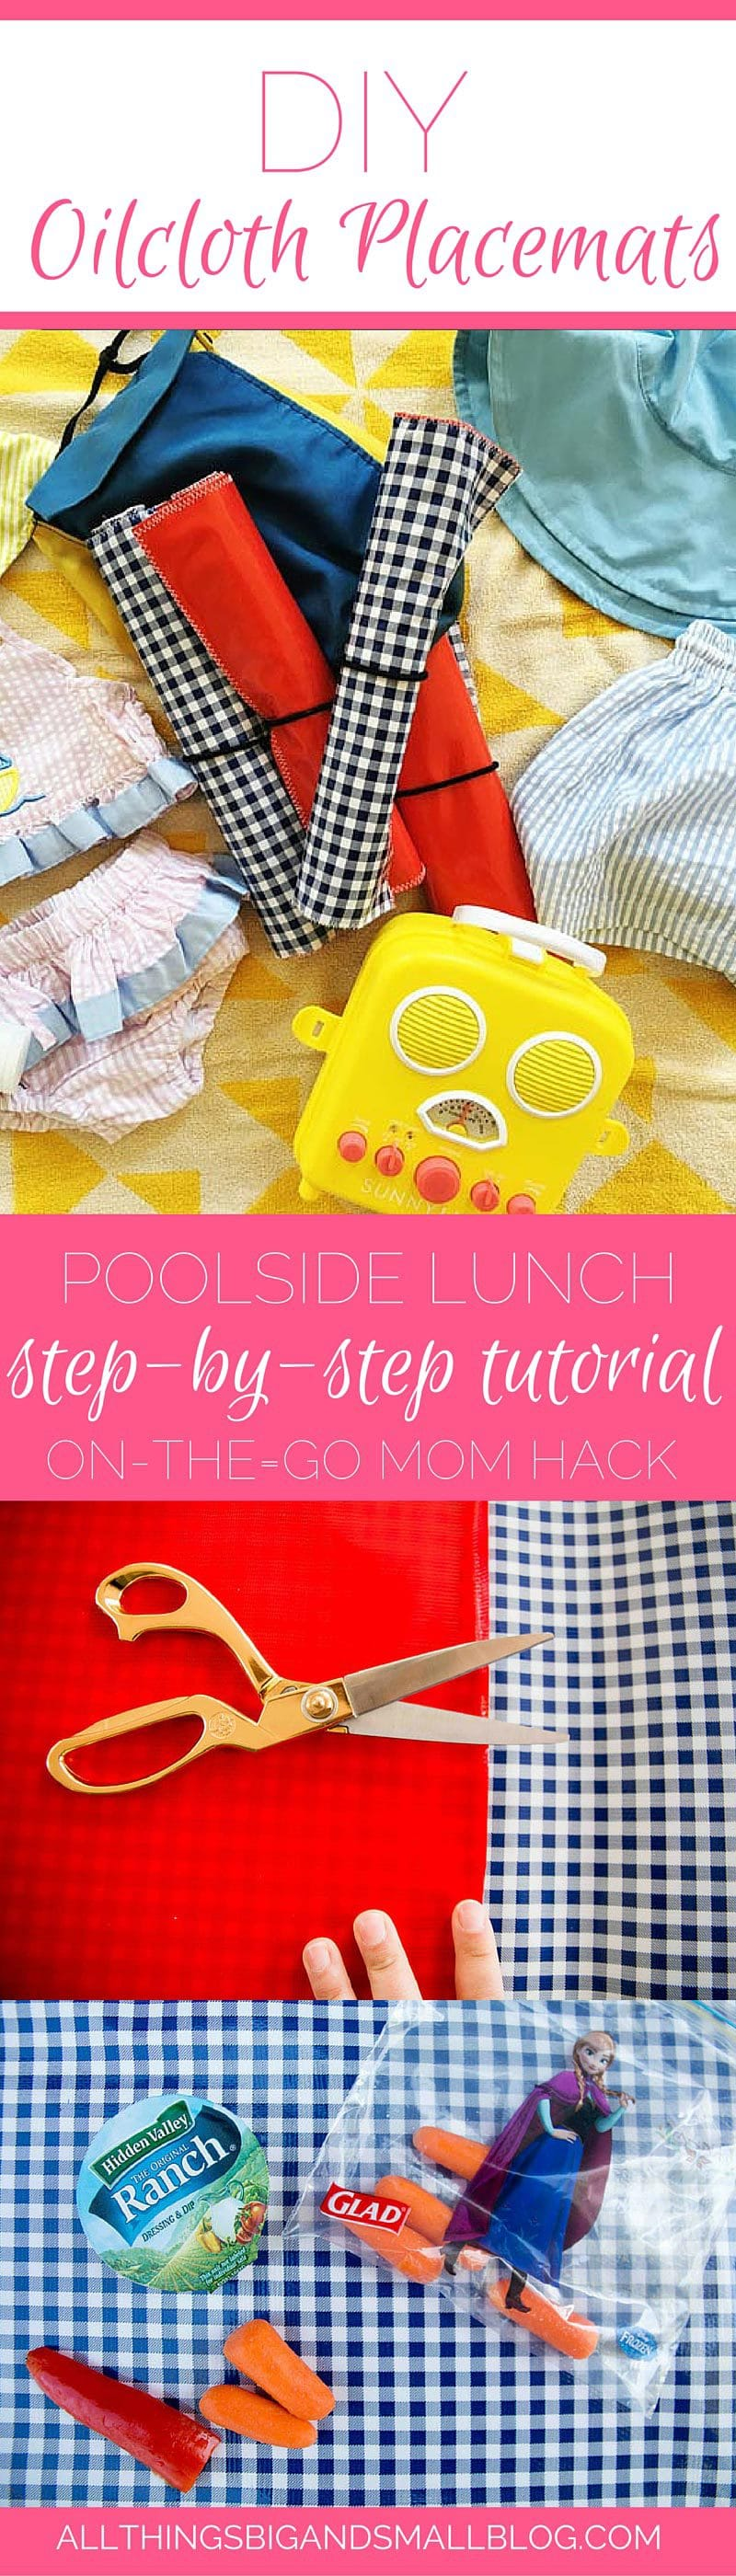 DIY Oilcloth Placemat- an easy DIY for the on-the-go mom. #ad Perfect for poolside lunches! This step-by-step is an easy DIY for parents of toddlers to get them to eat their lunches! More at All Things Big and Small Blog!